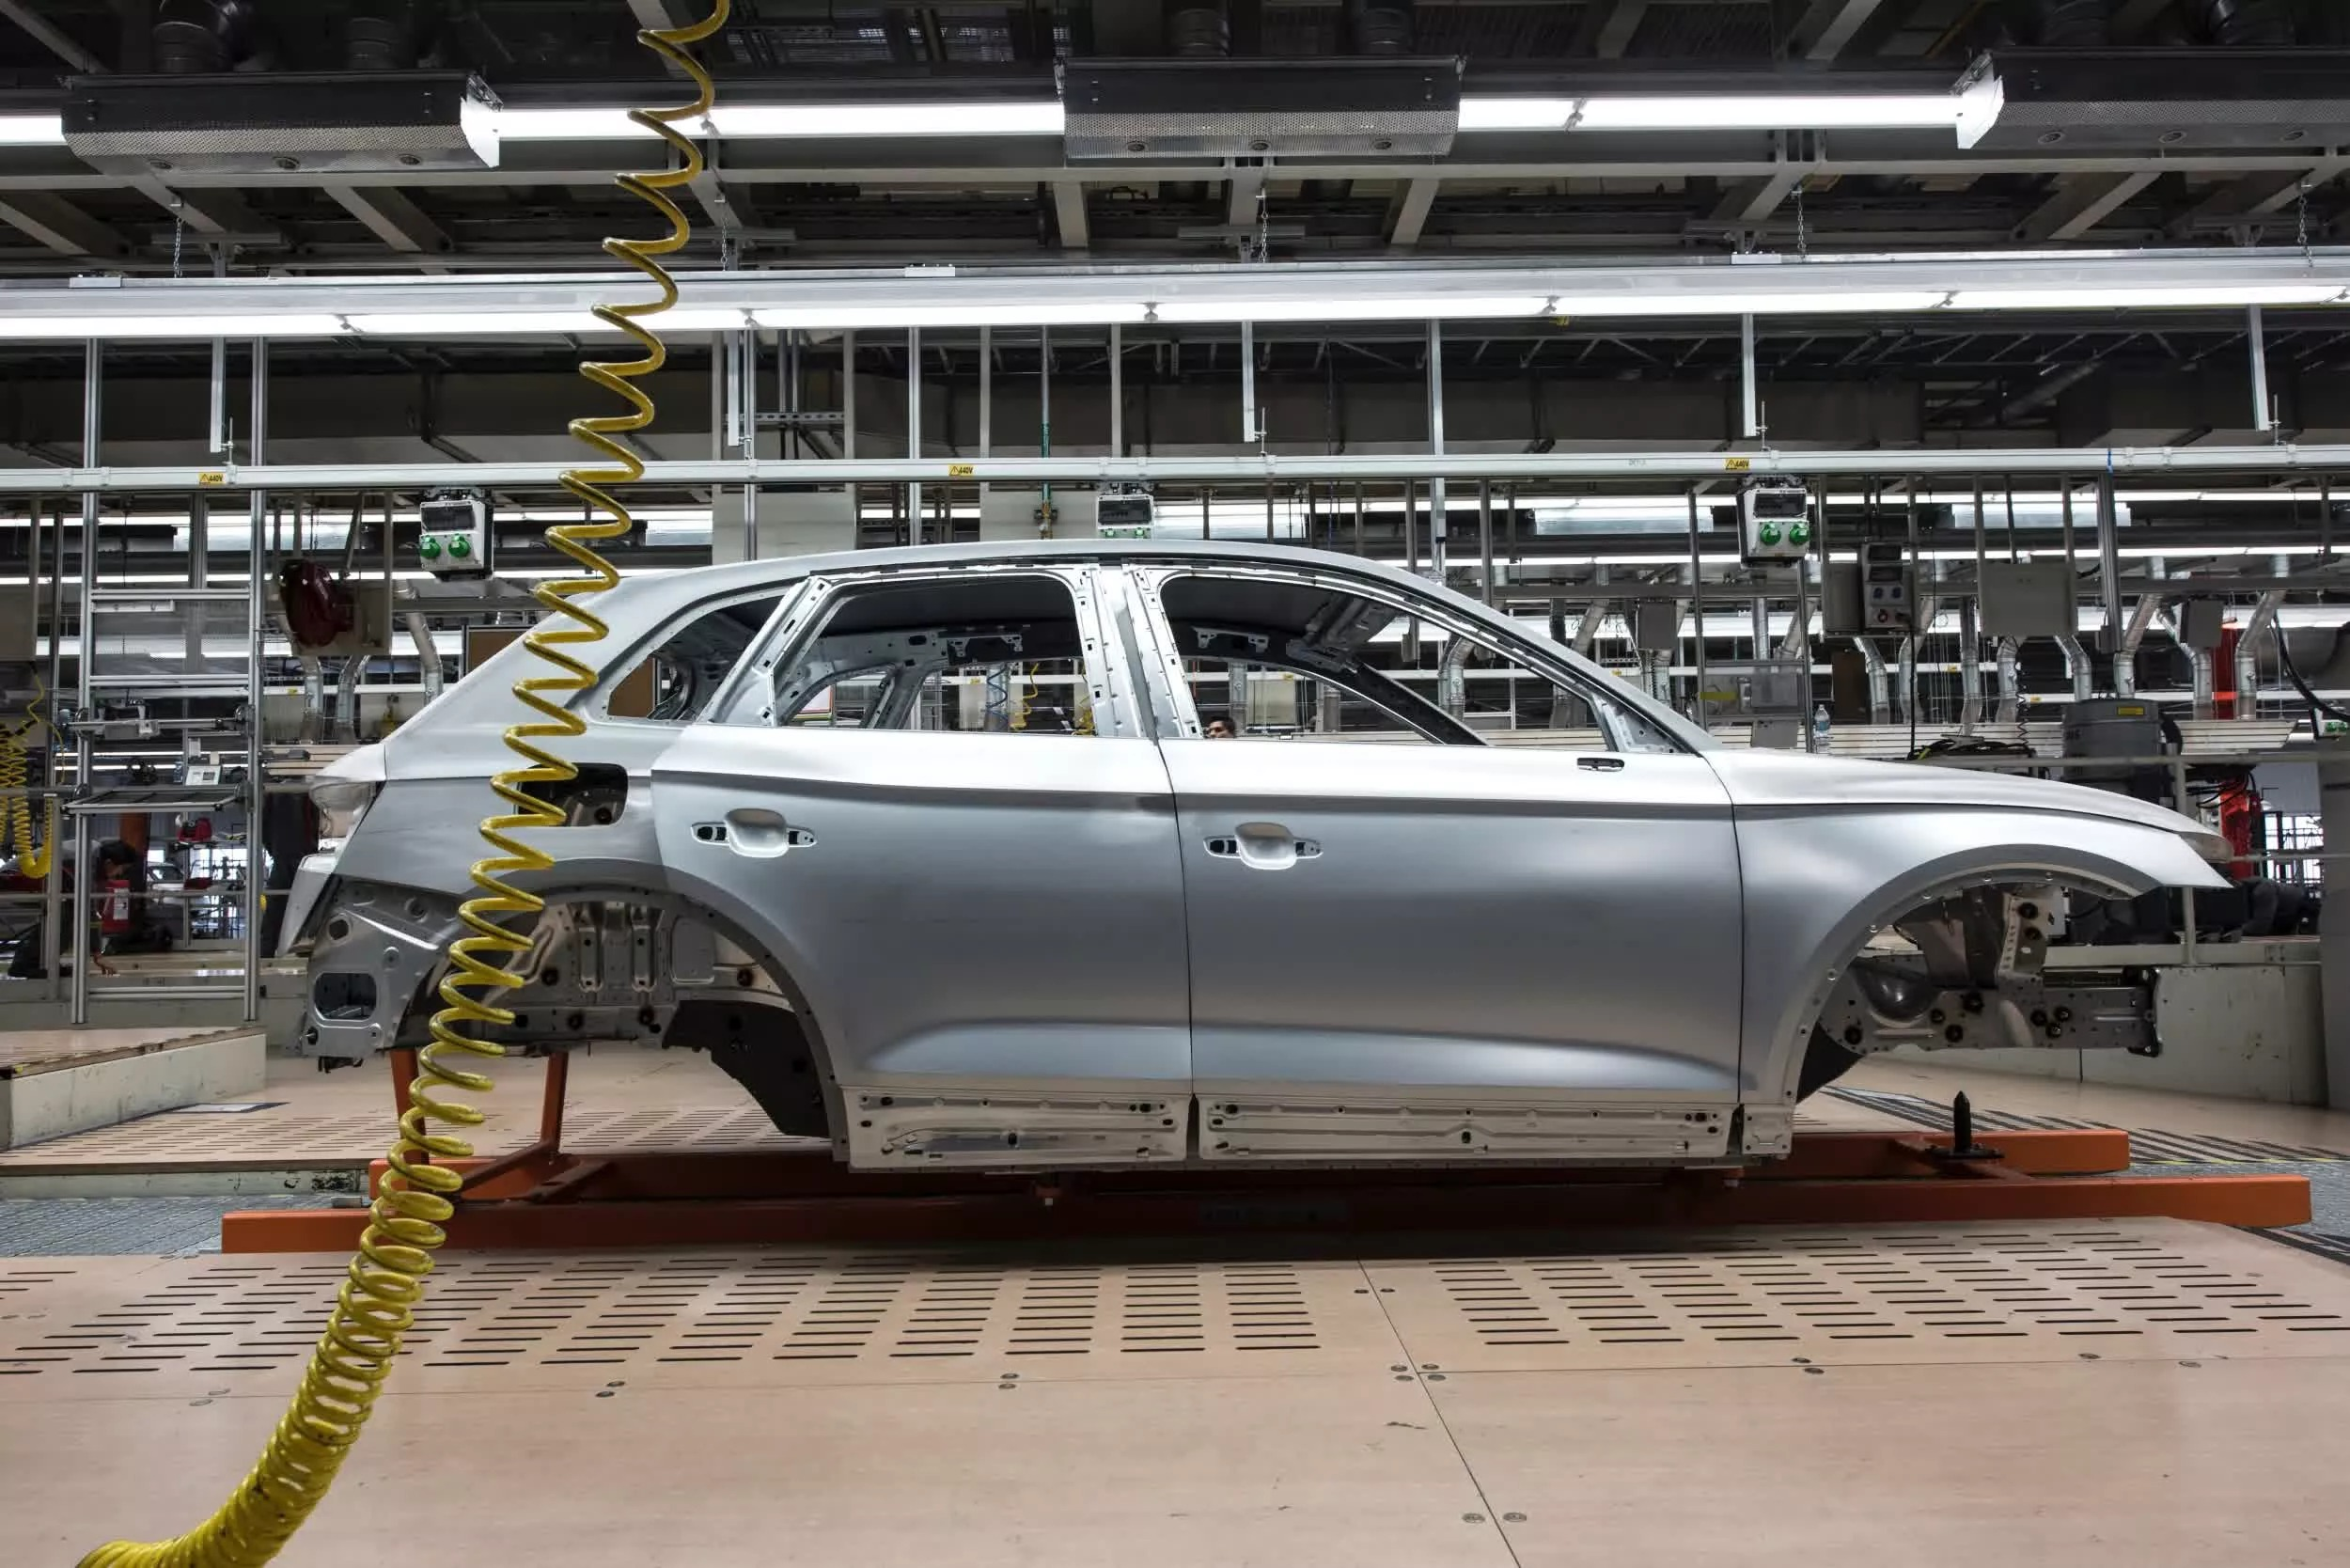 Toyota to slash production in Japan by 40 percent in September due to global chip shortage